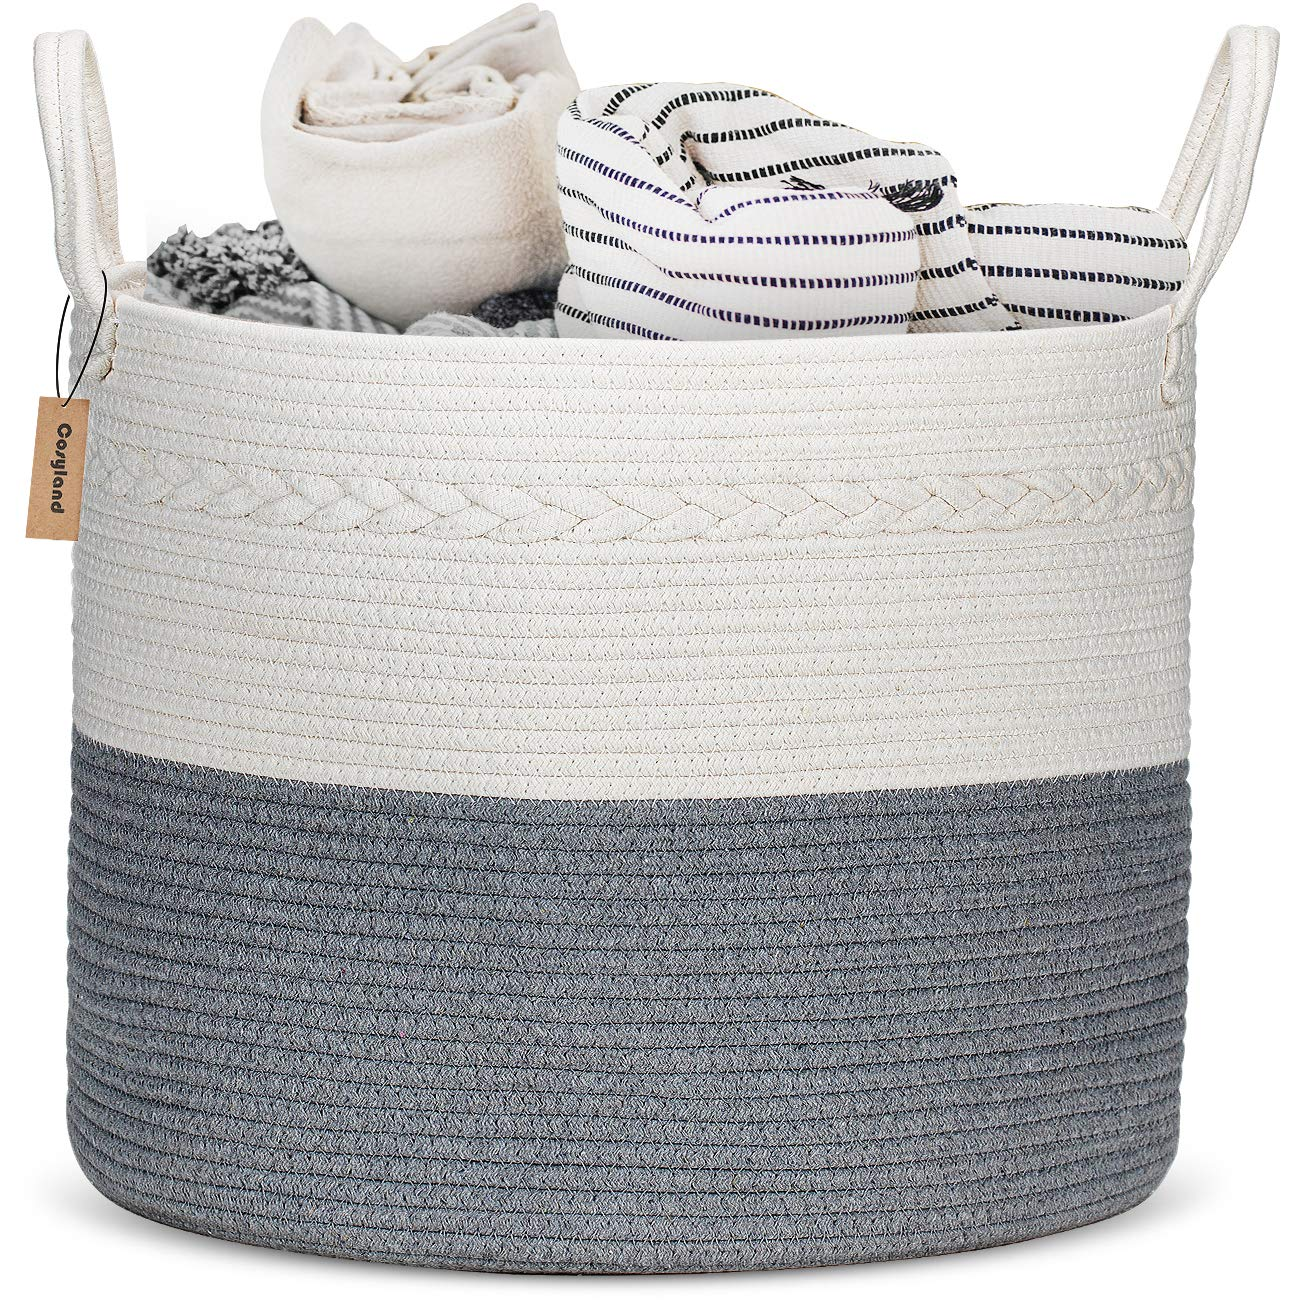 """COSYLAND Extra Large Woven Storage Basket 17""""x 17""""x15"""" Cotton Rope Organizer Baby Laundry Baskets for Blanket Toys Towels Nursery Hamper Bin with Handle"""